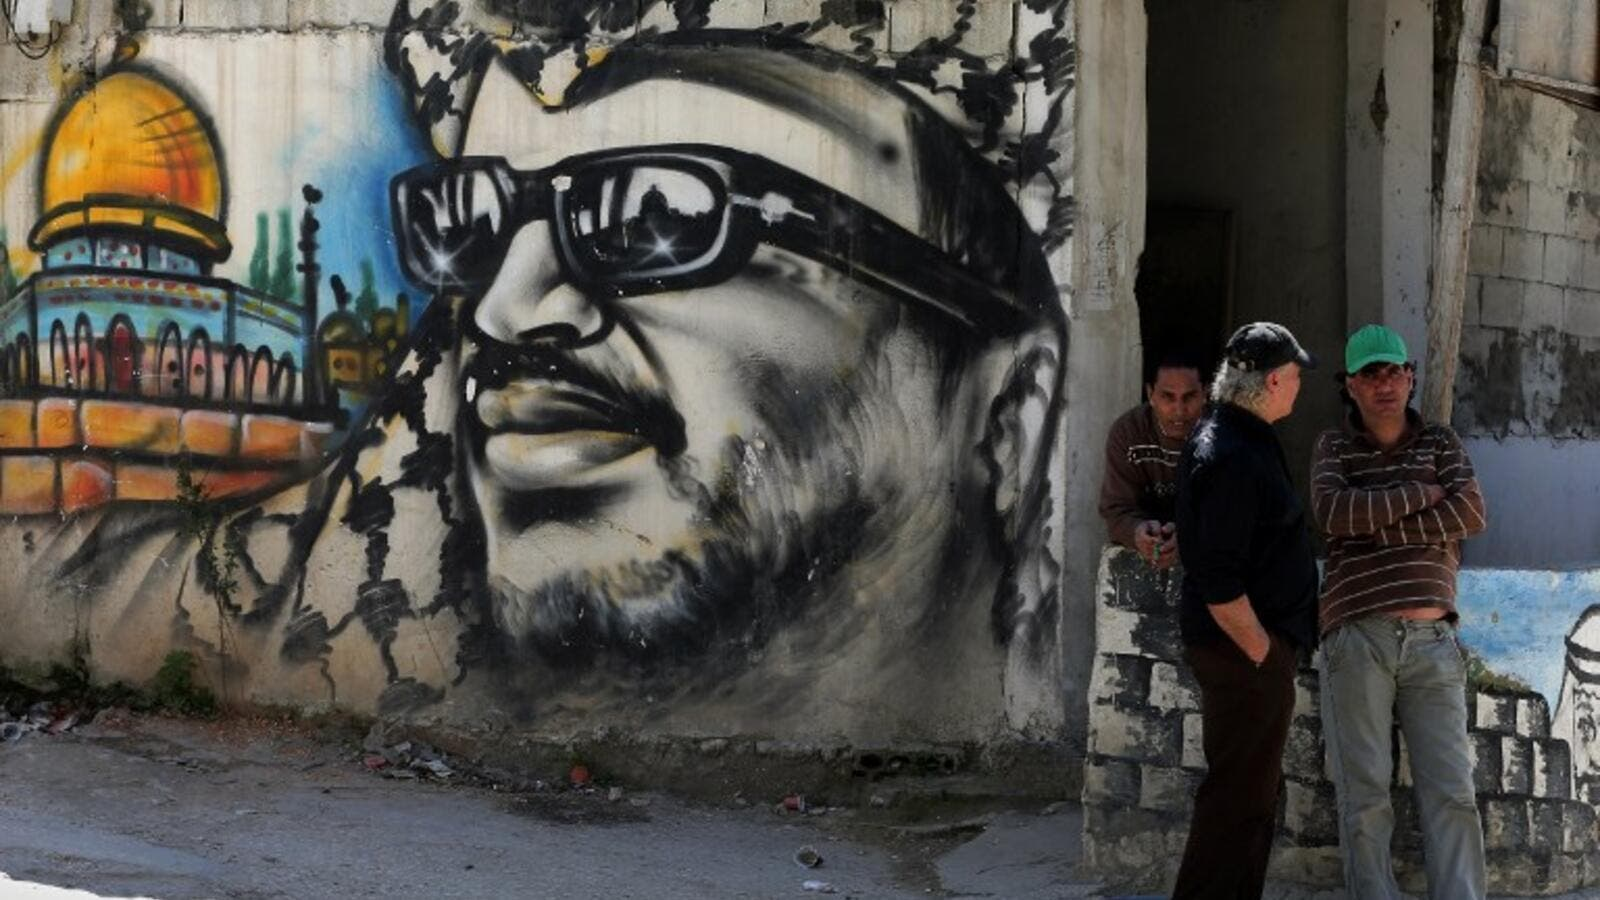 Palestinian refugees stand next to graffiti bearing a portrait of late Palestinian President Yasser Arafat at the Ain Al-Helweh refugee camp. (AFP/File)